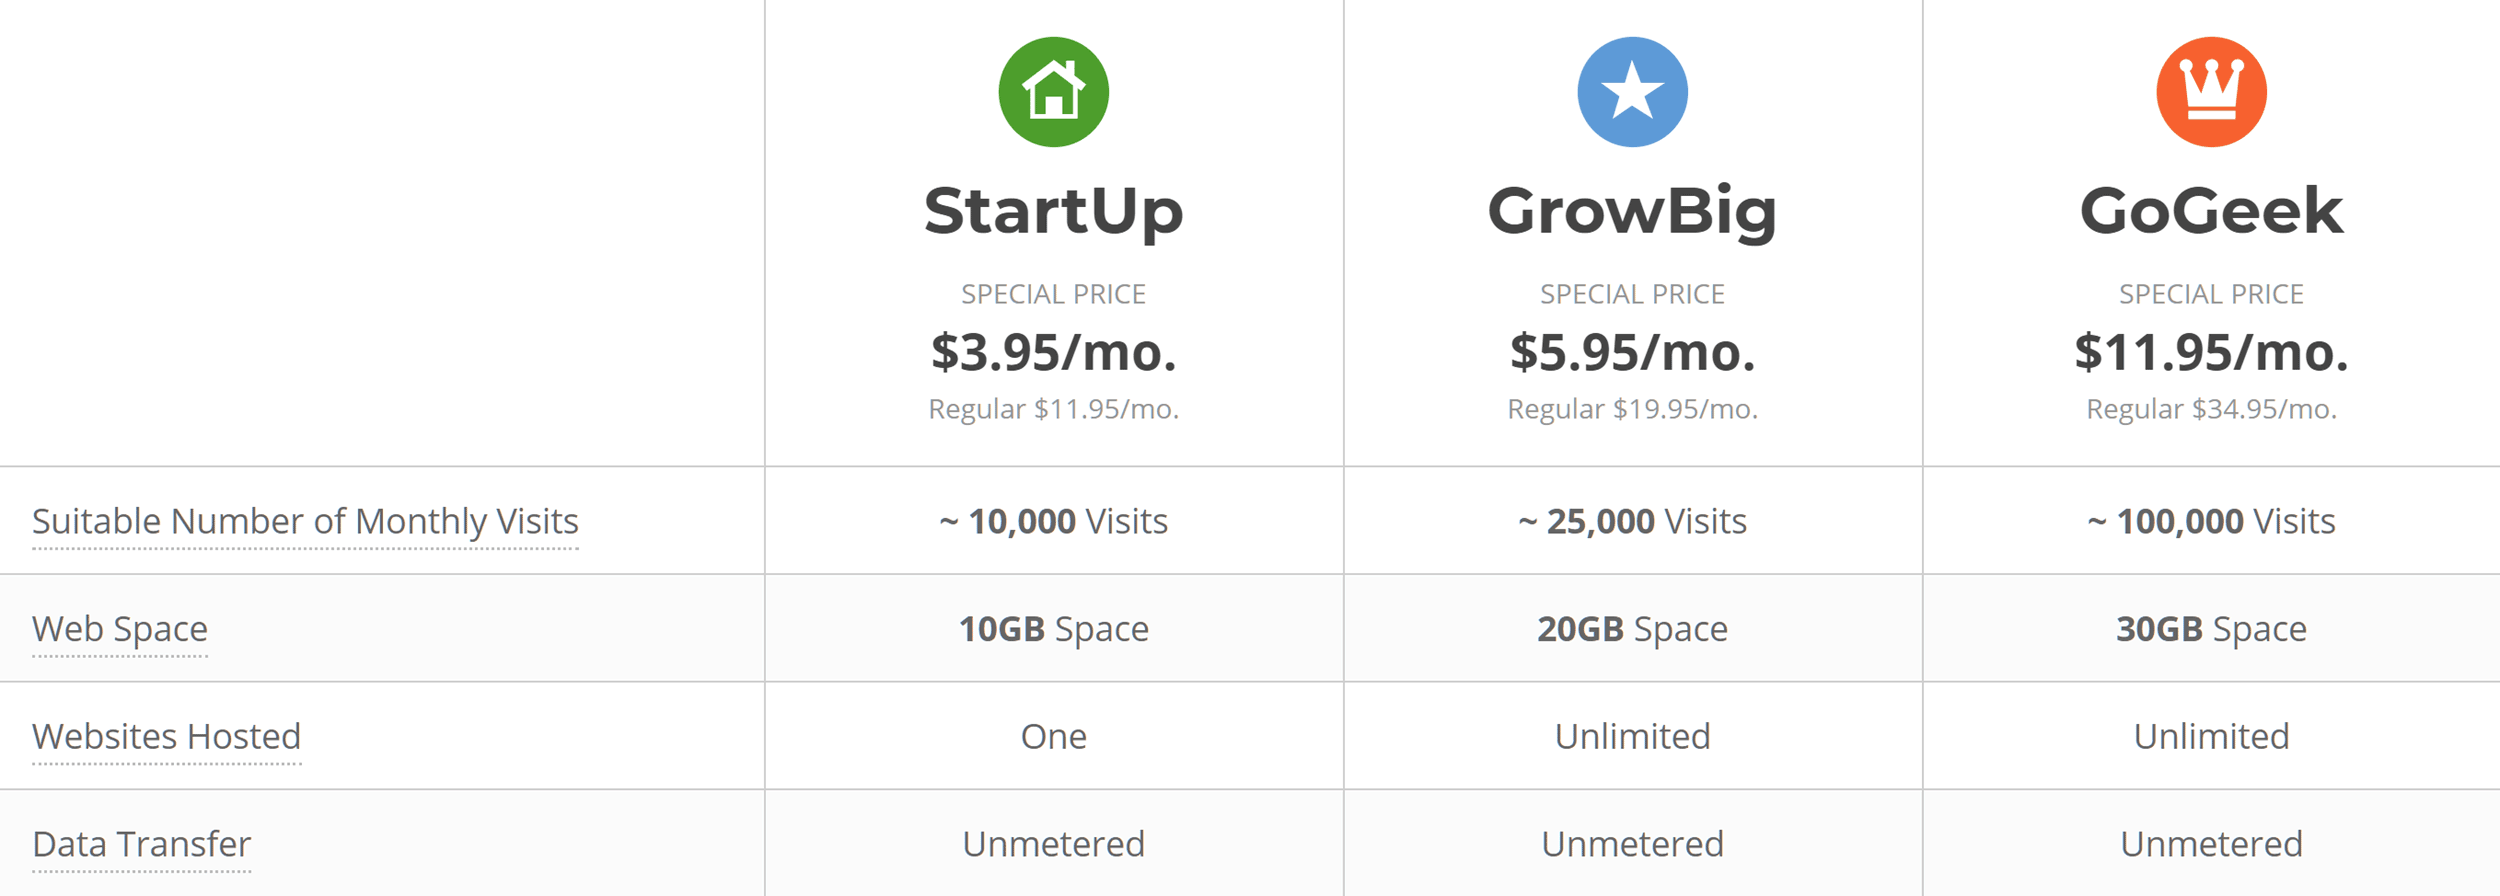 SiteGround StartUp vs GoGeek Comparison